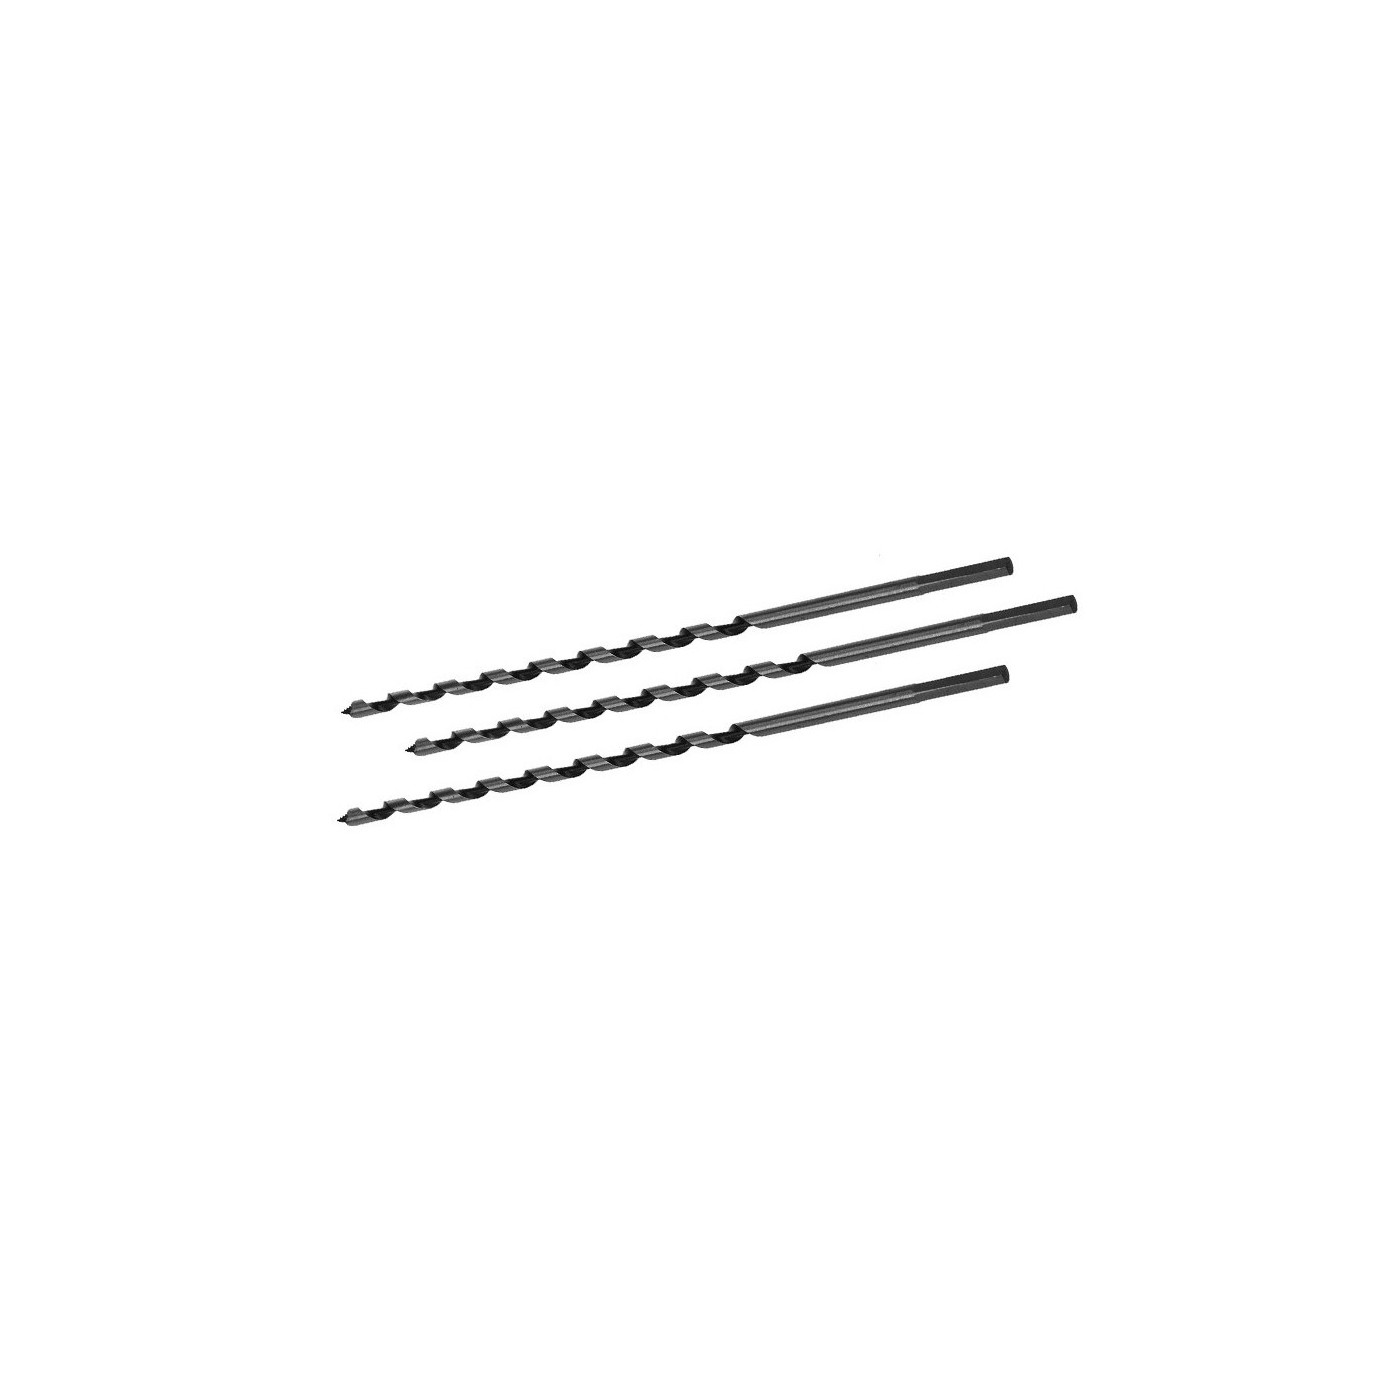 Set of 3 auger drill bits for wood, 6x230 mm